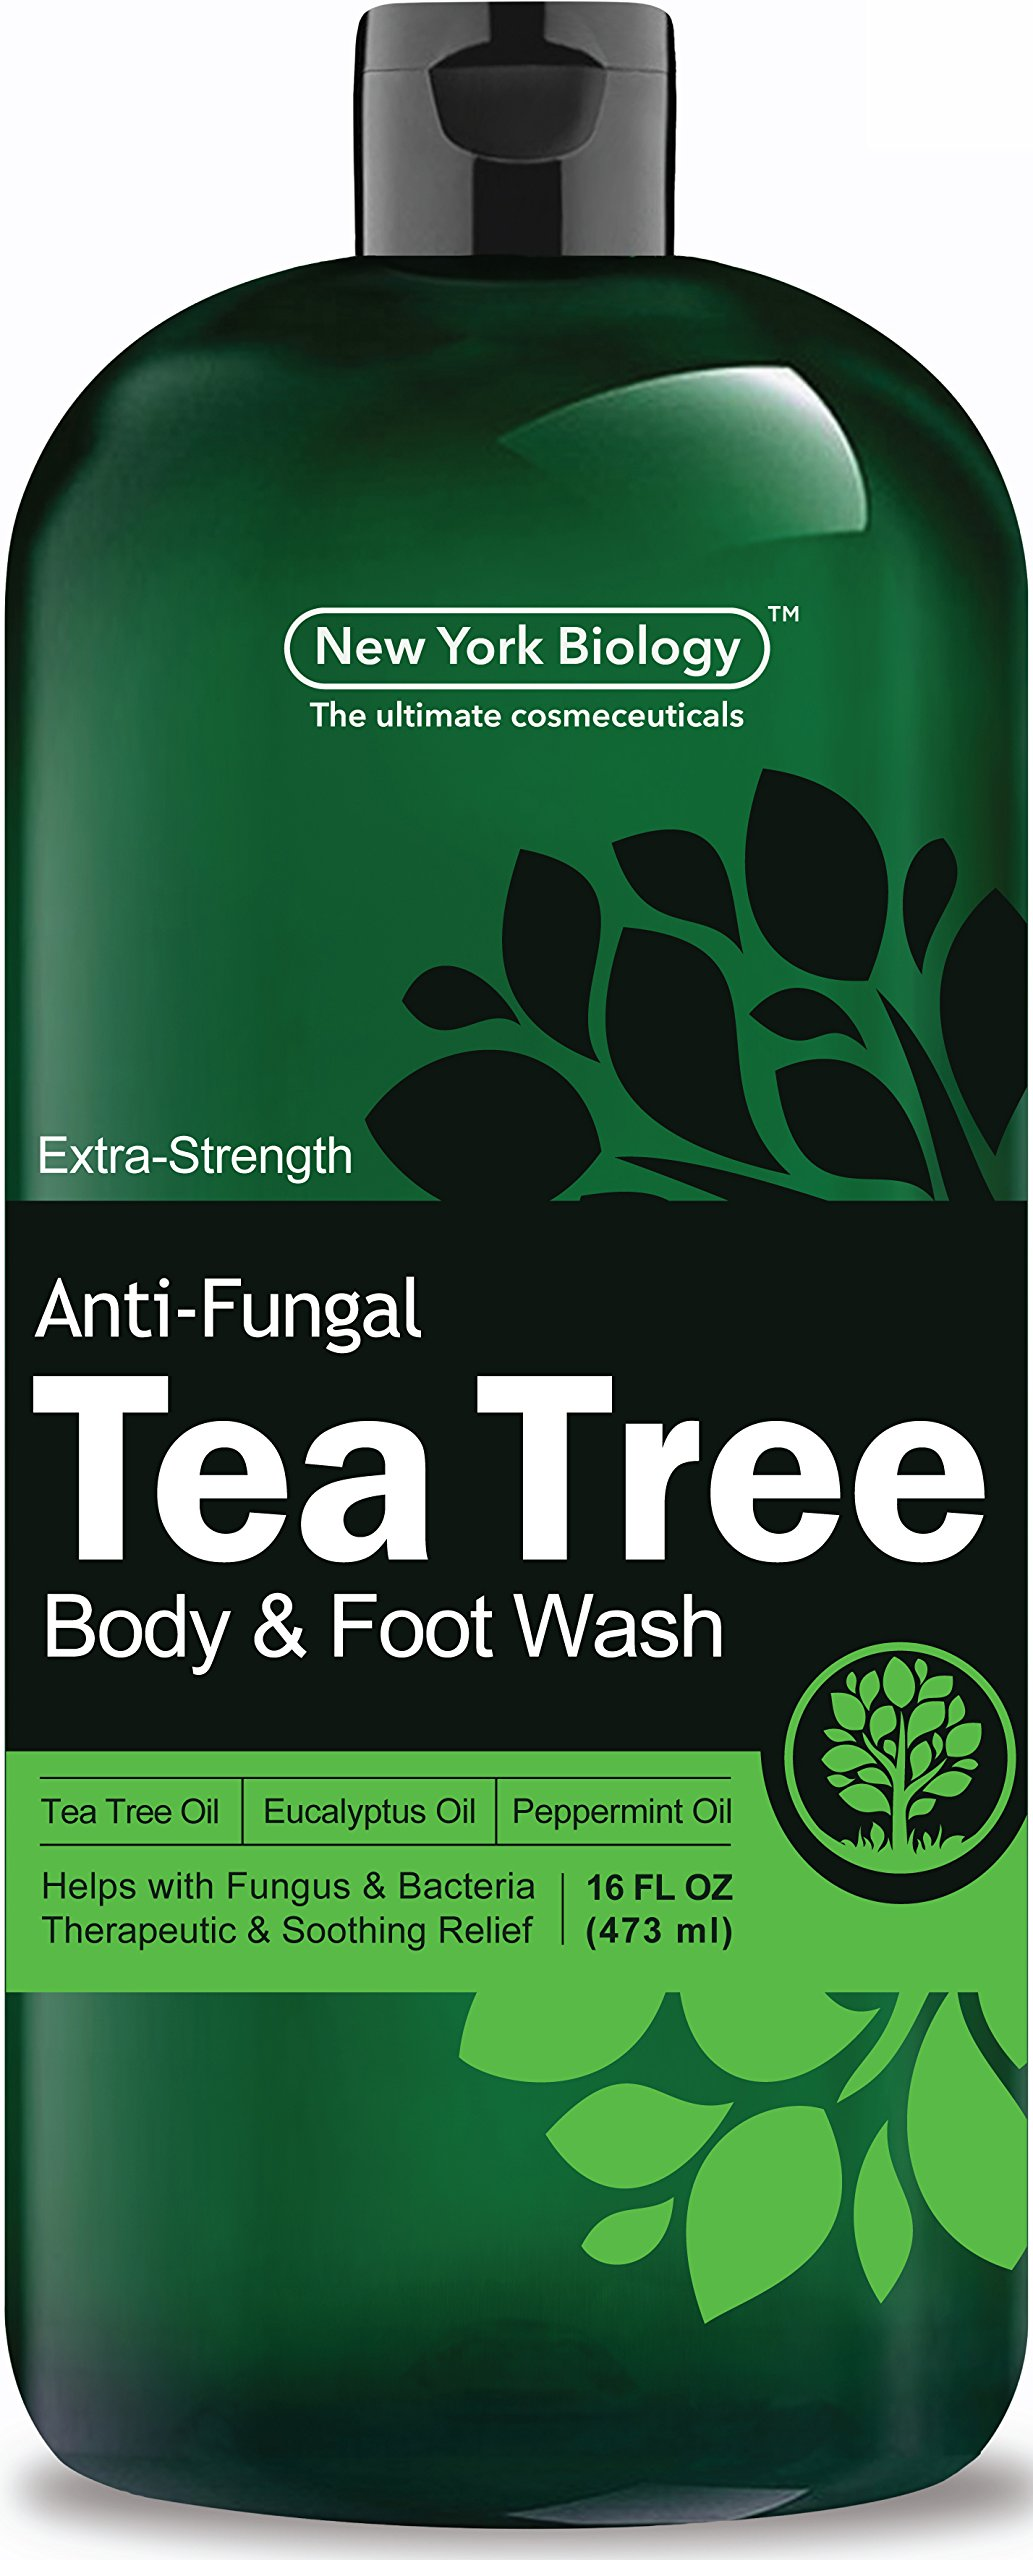 Antifungal Tea Tree Oil Body Wash – HUGE 16 OZ – 100% Pure & Natural - Extra Strength Professional Grade - Helps Soothe Toenail Fungus, Athlete Foot, Body Itch, Jock Itch & Eczema by New York Biology (Image #2)